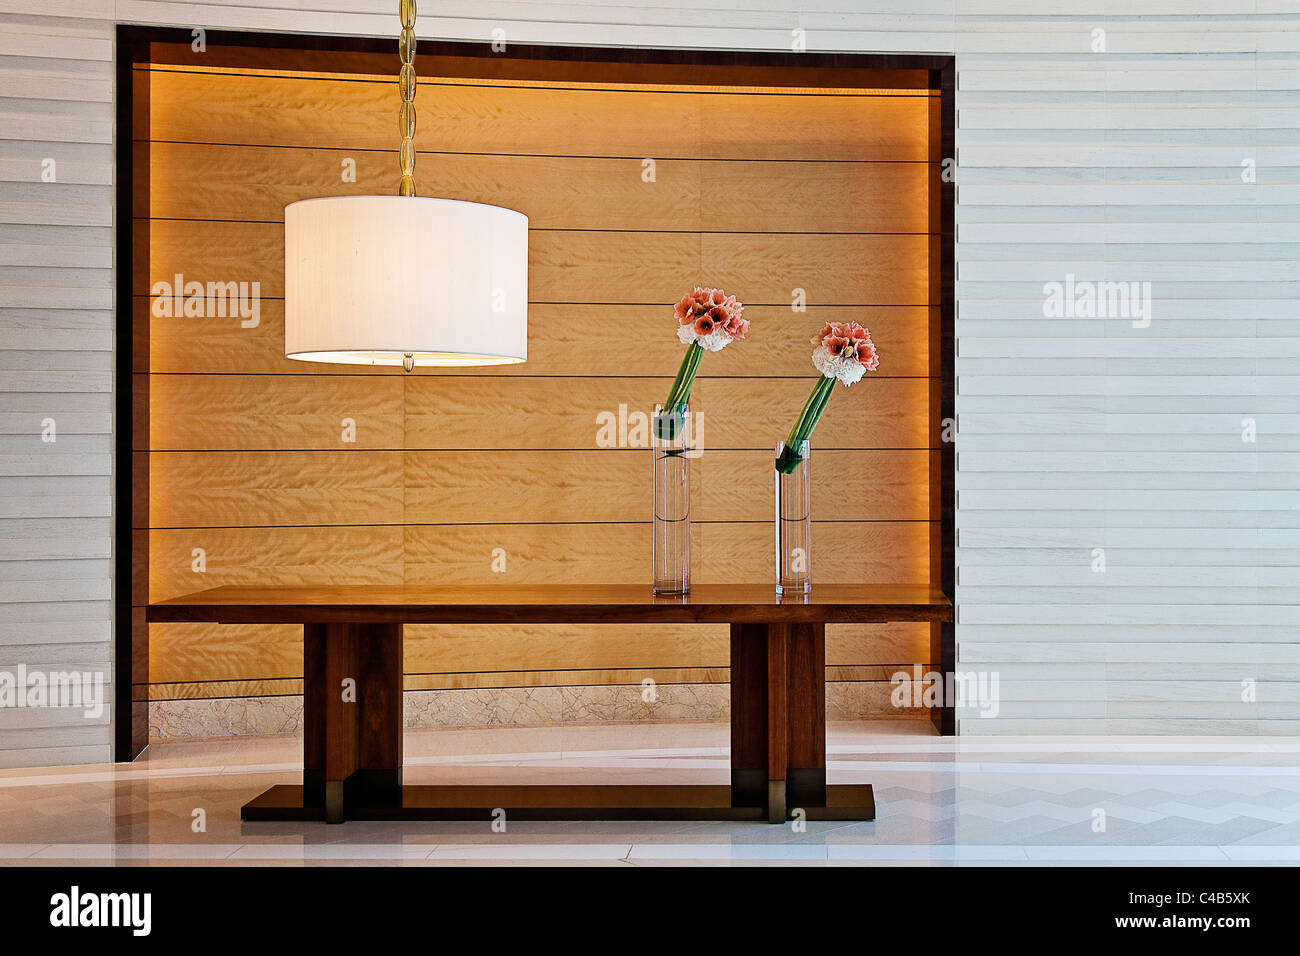 Entrance lobby of the Four Seasons Hotel, IFC Centre, Central District, Hong Kong China. - Stock Image